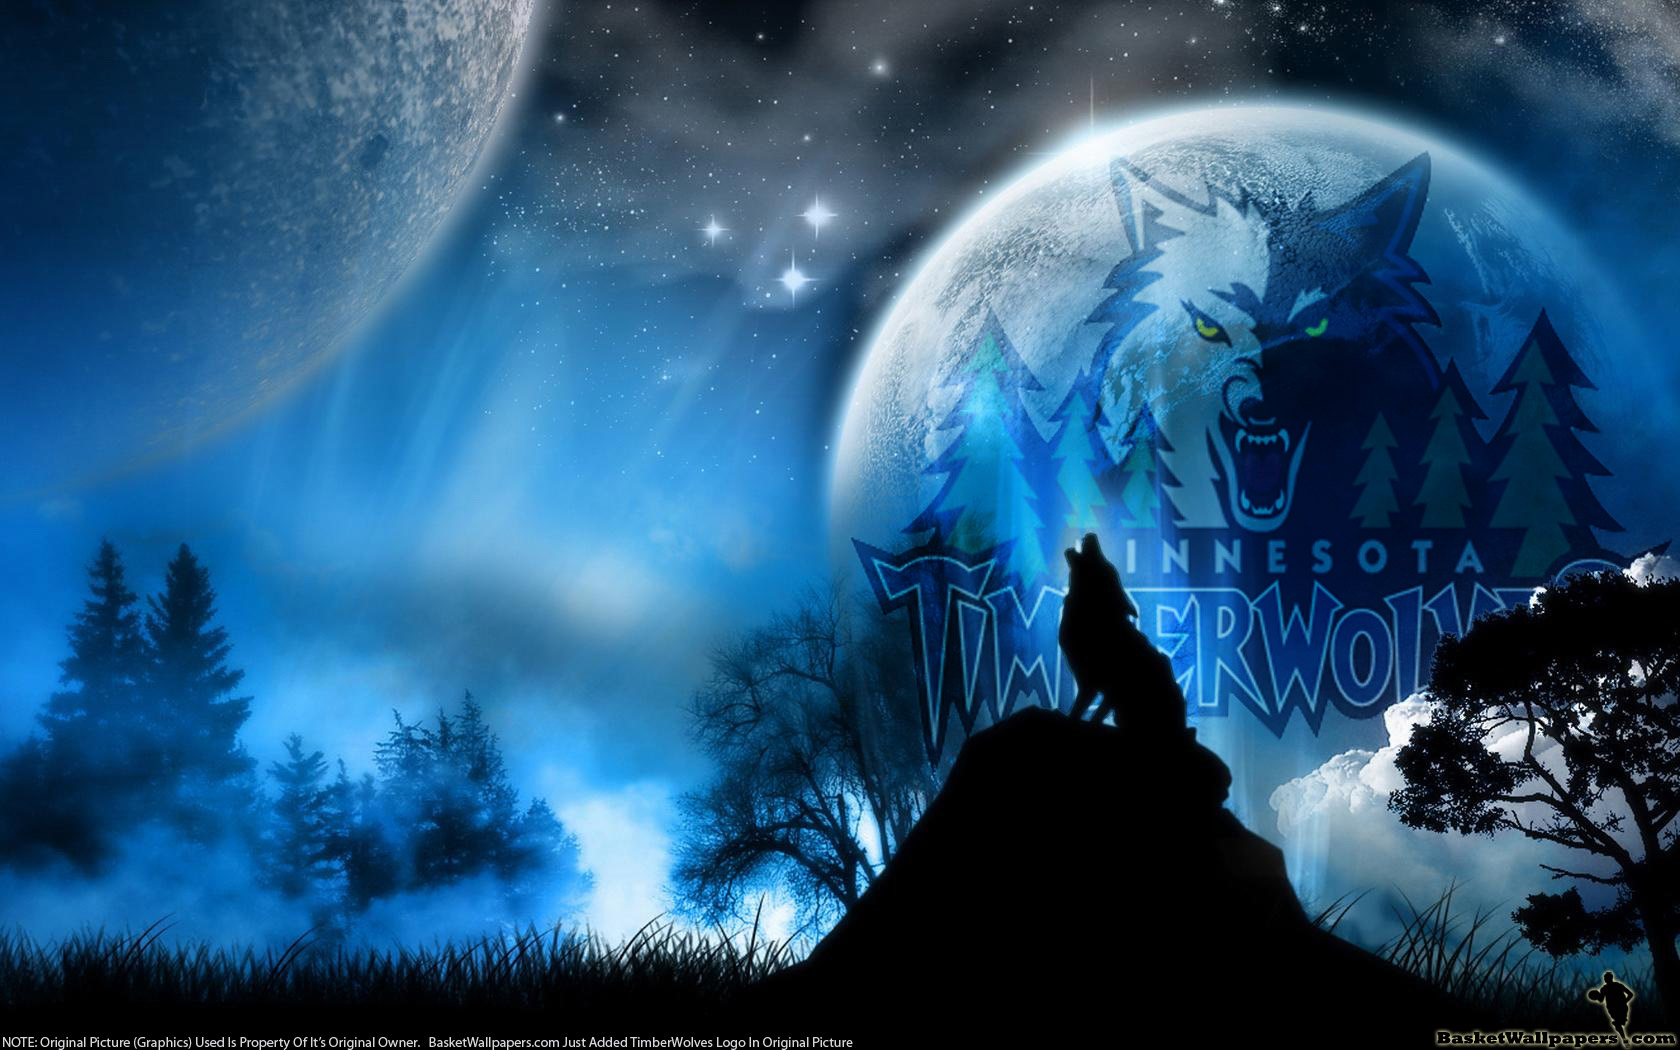 Minnesota Timberwolves Widescreen Wallpaper Basketball Wallpapers at 1680x1050